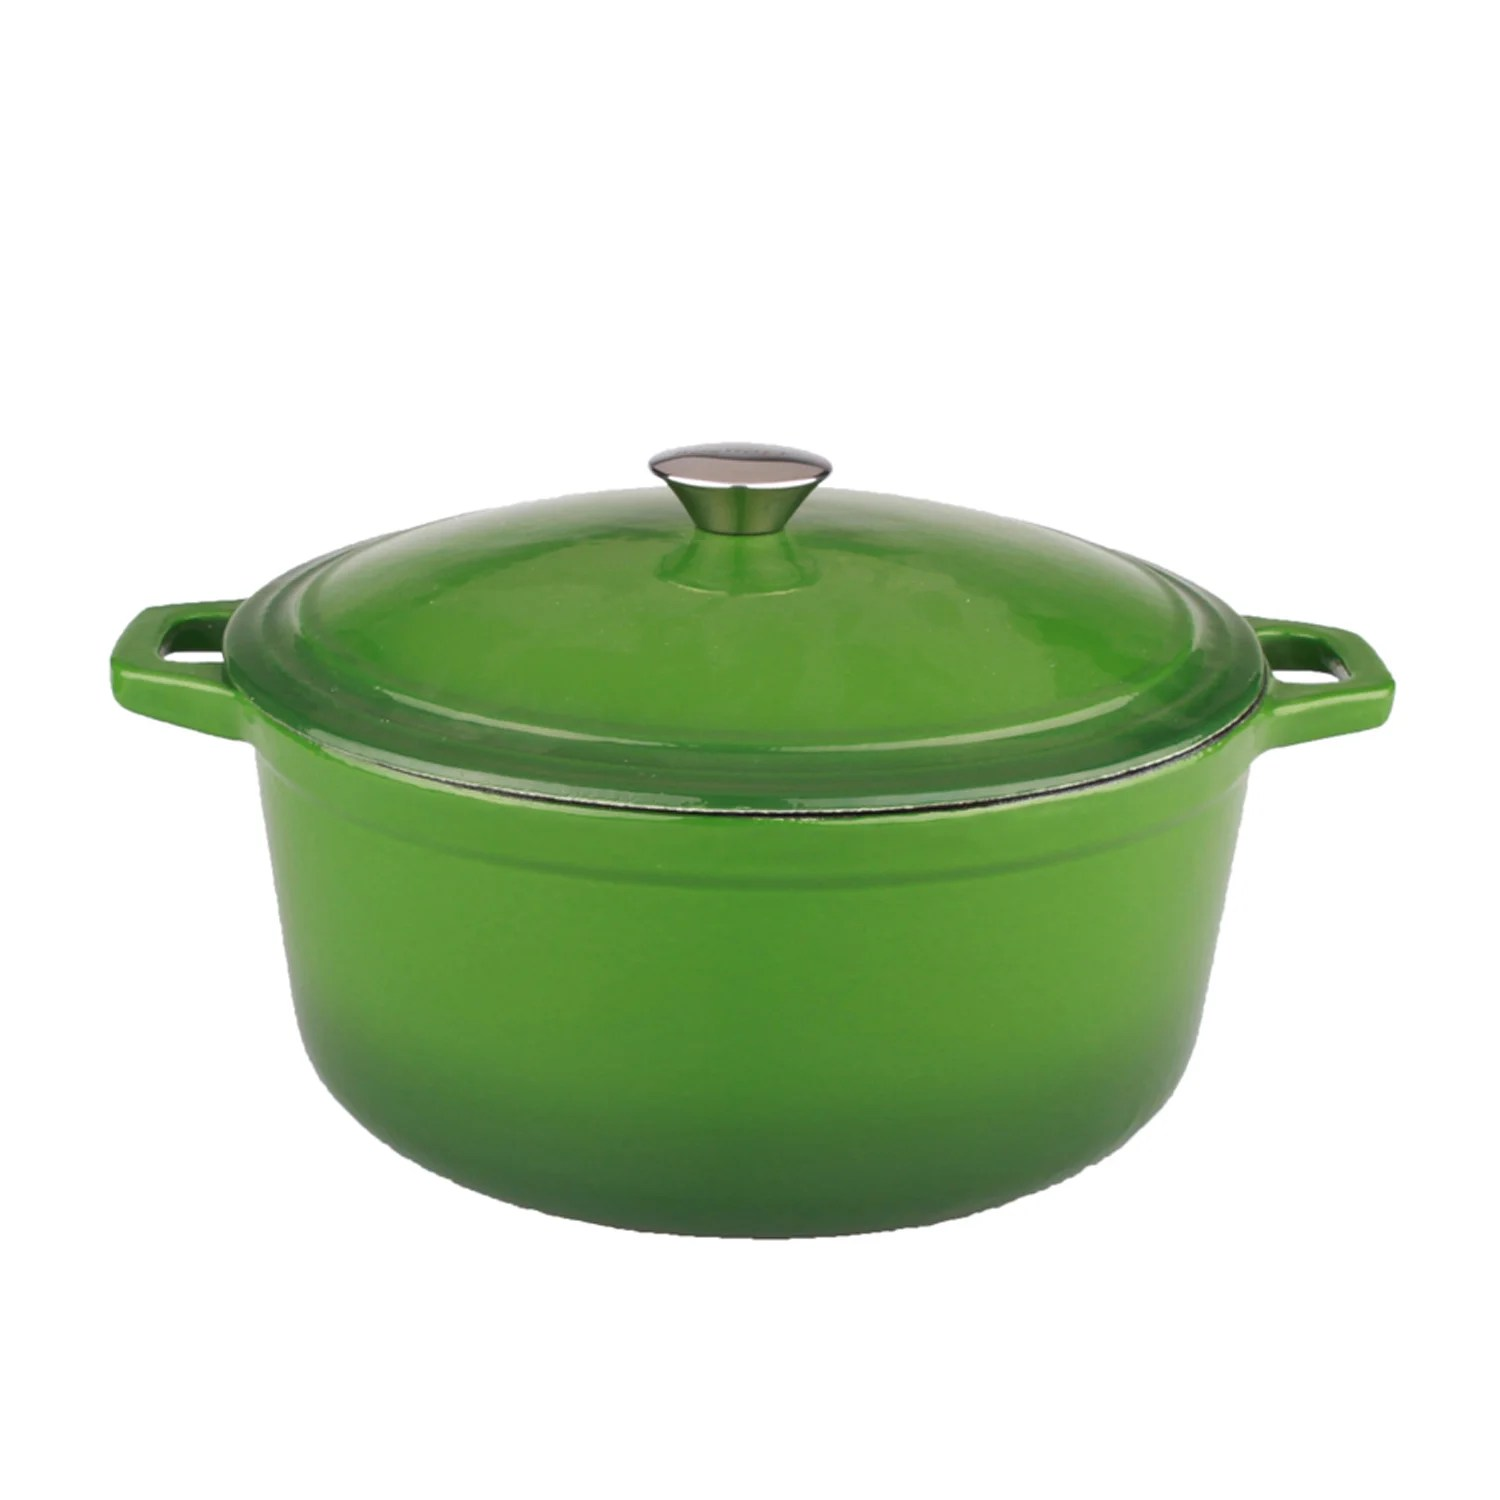 Cast Iron Casserole Dish Neo 5 Quart Green Cast Iron Oval Covered Casserole Dish